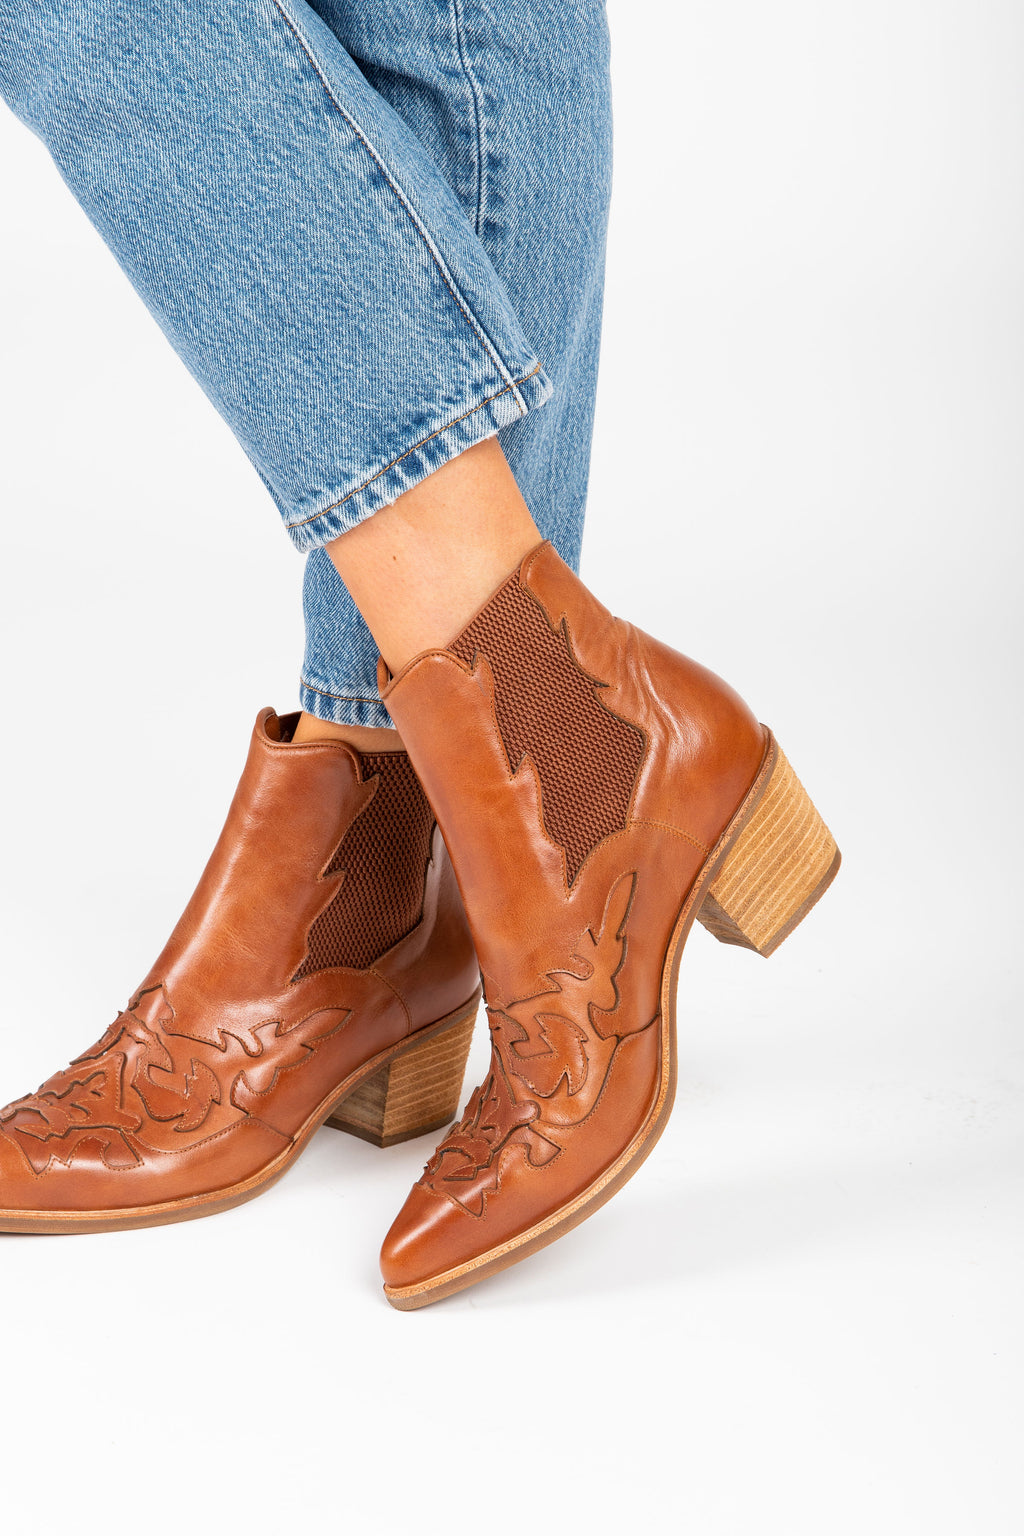 Silent D: The Rossie Boot in Cognac Leather